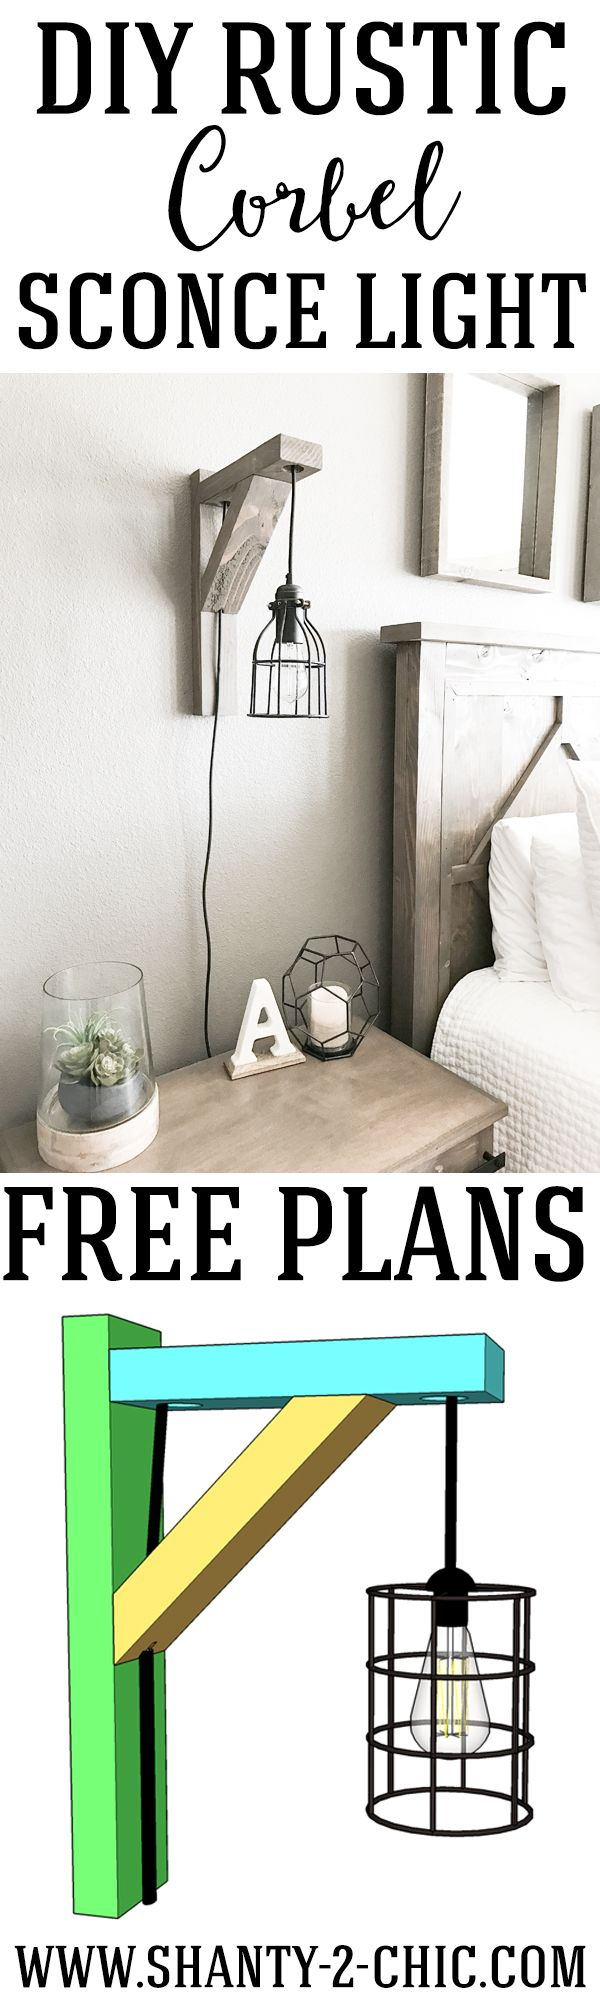 The 25 Best Rustic Industrial Ideas On Pinterest Rustic Industrial Decor Rustic Room And Diy